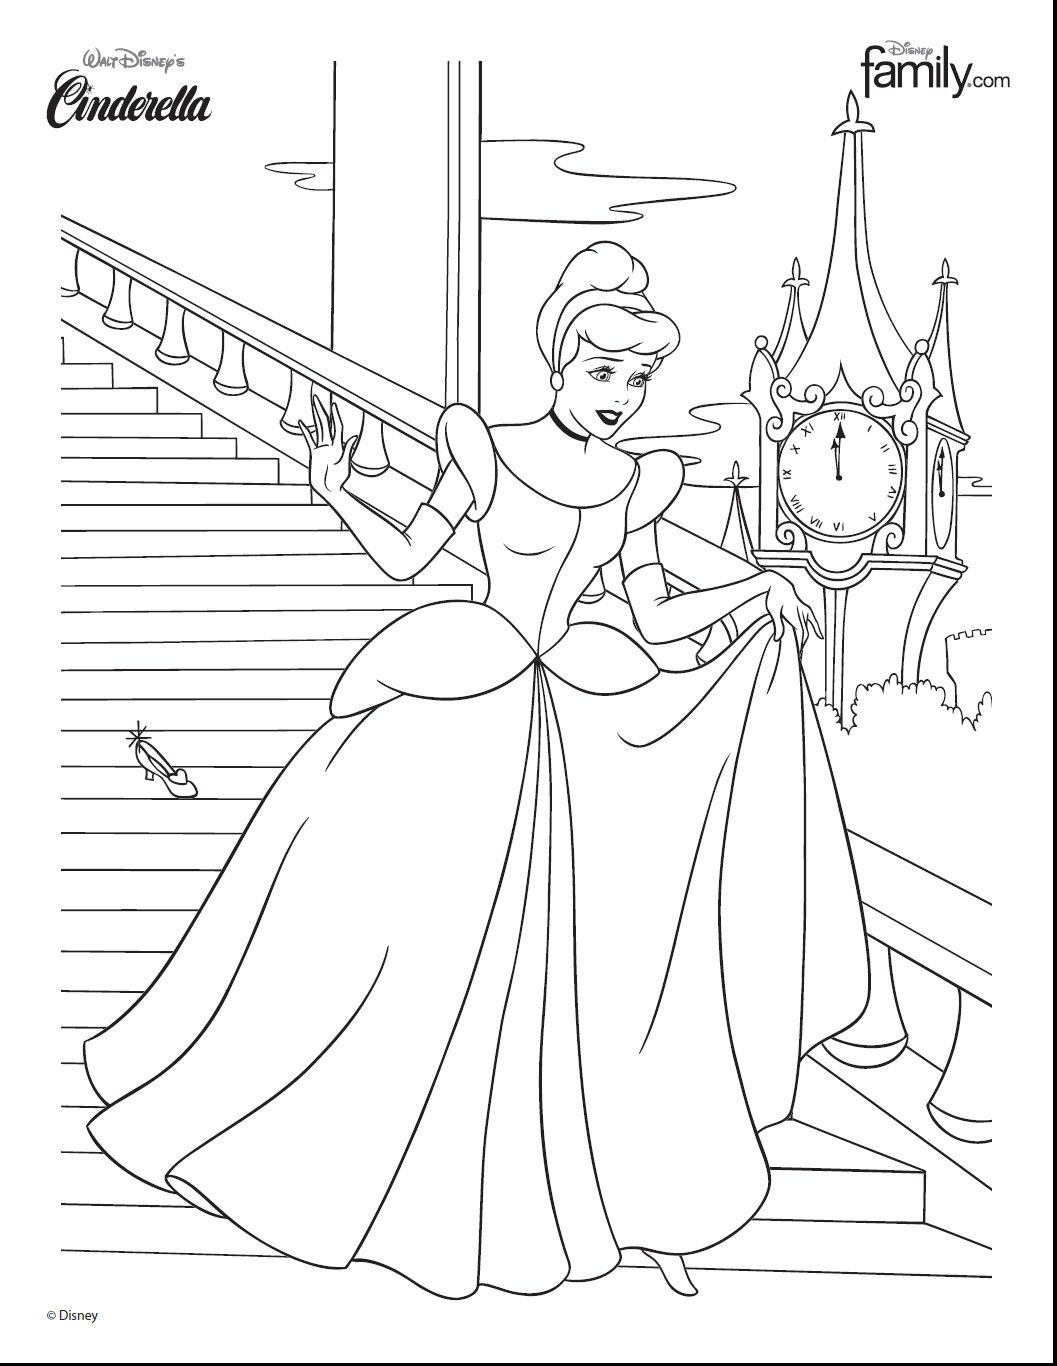 Disney Princess Cinderella At The Ball Colouring In Page